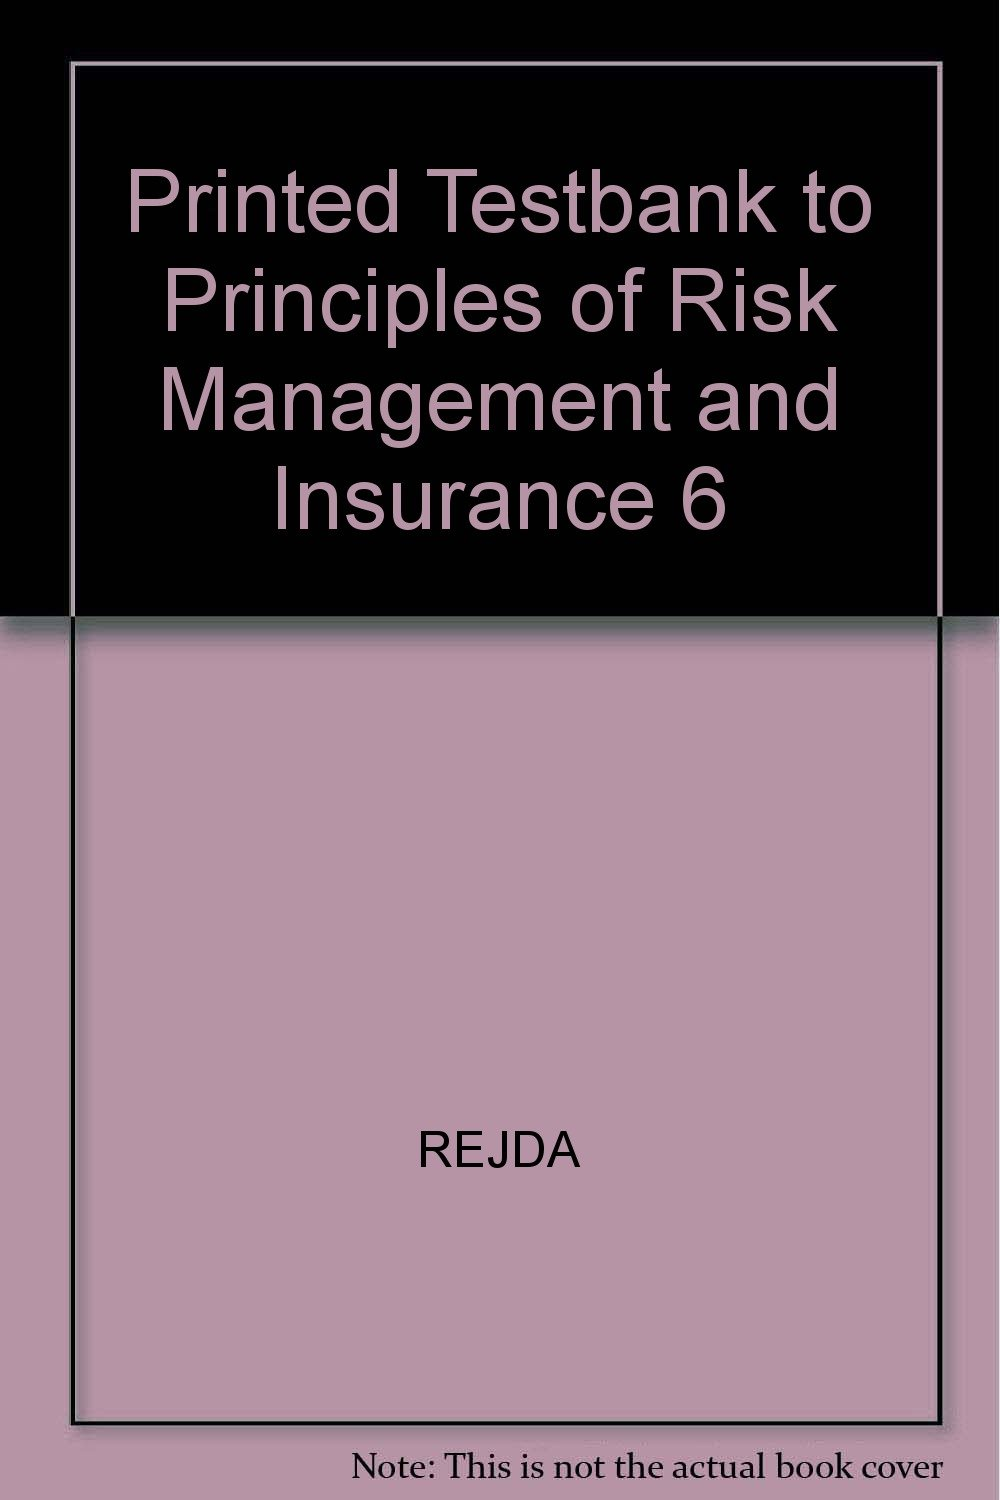 Printed Testbank to Principles of Risk Management and